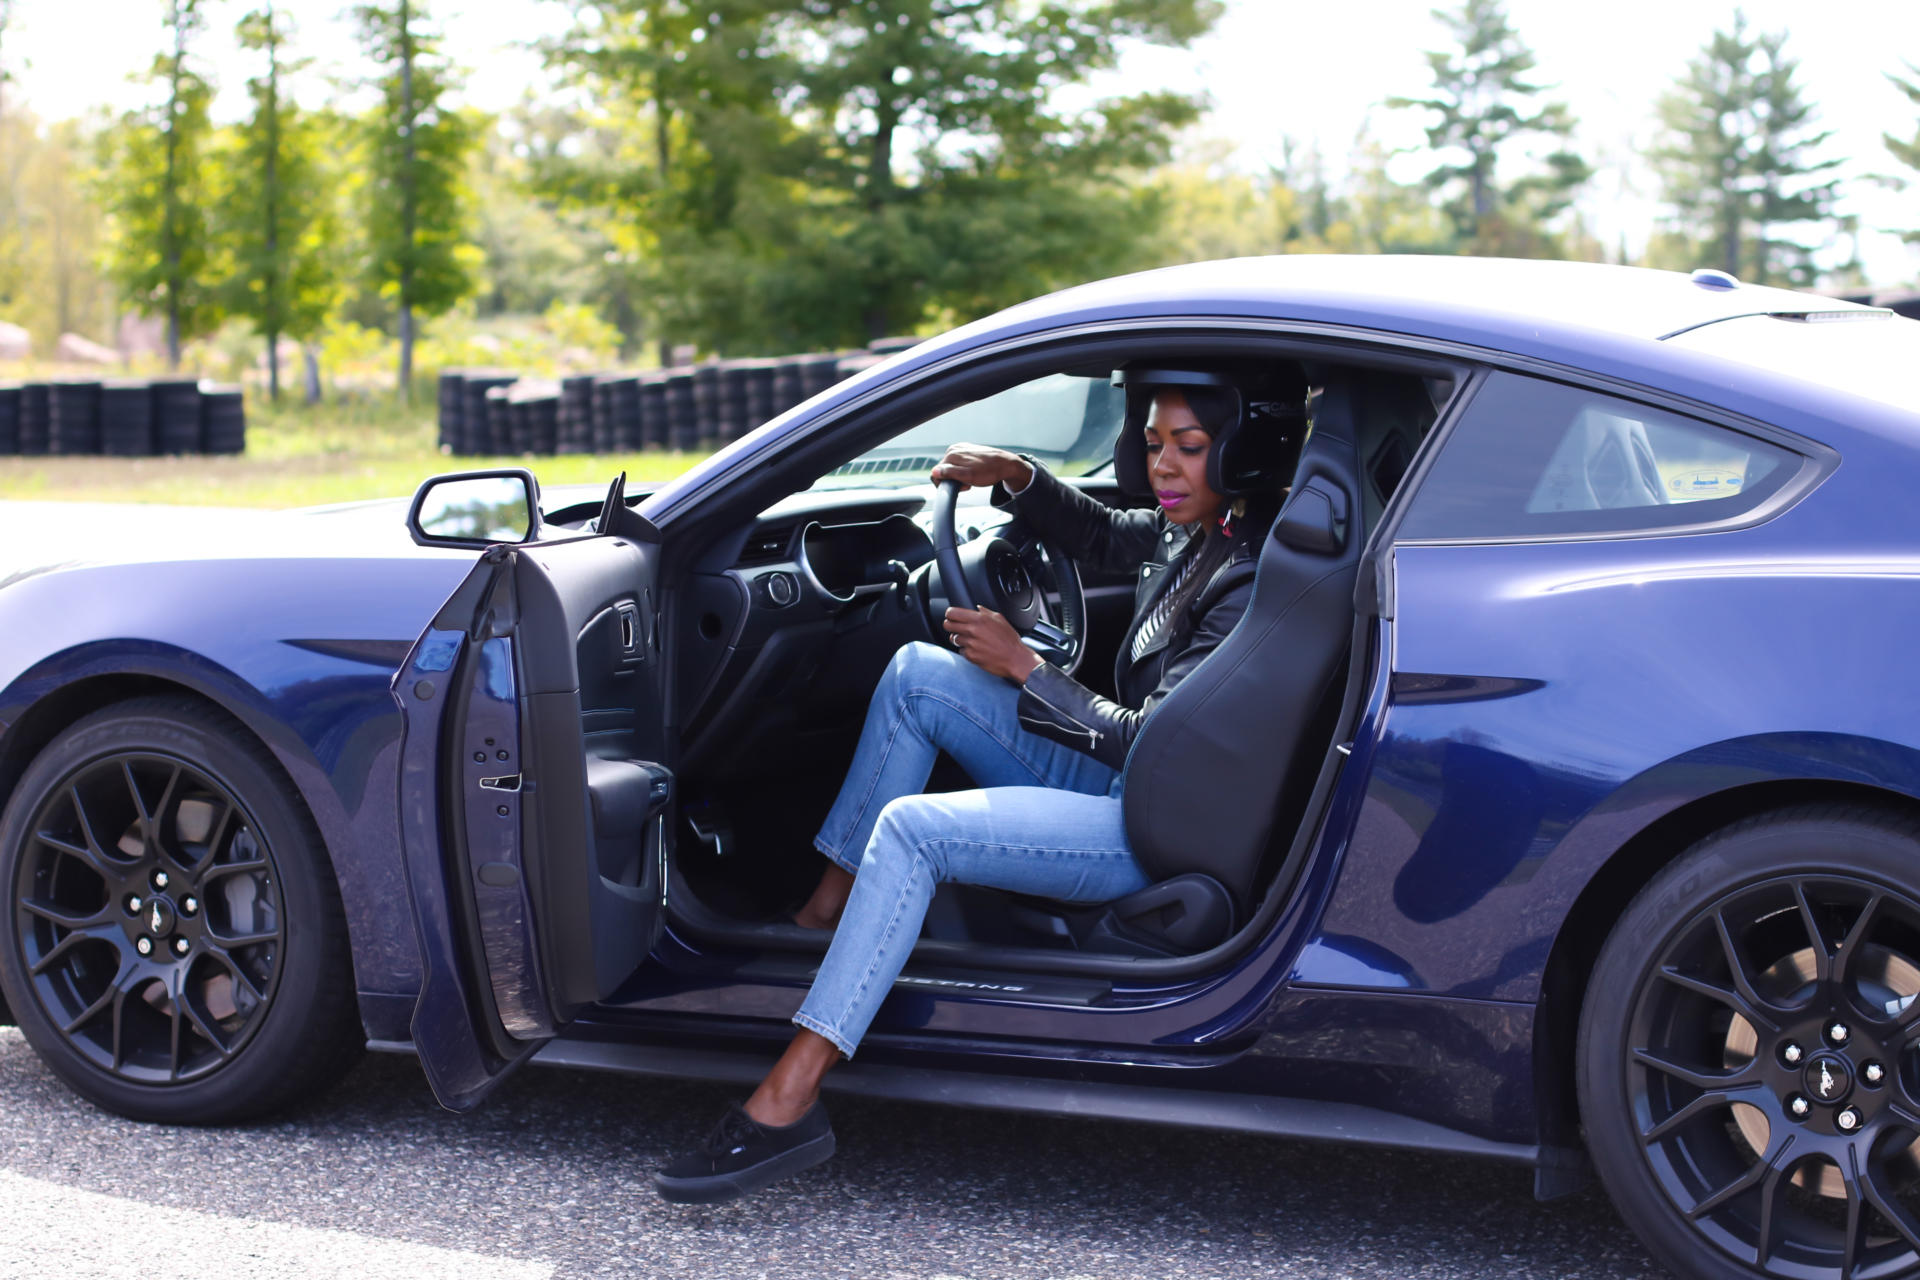 Driving This Car Was A Lifetime Experience - The 2018 Ford Mustang   Style Domination by Dominique Baker